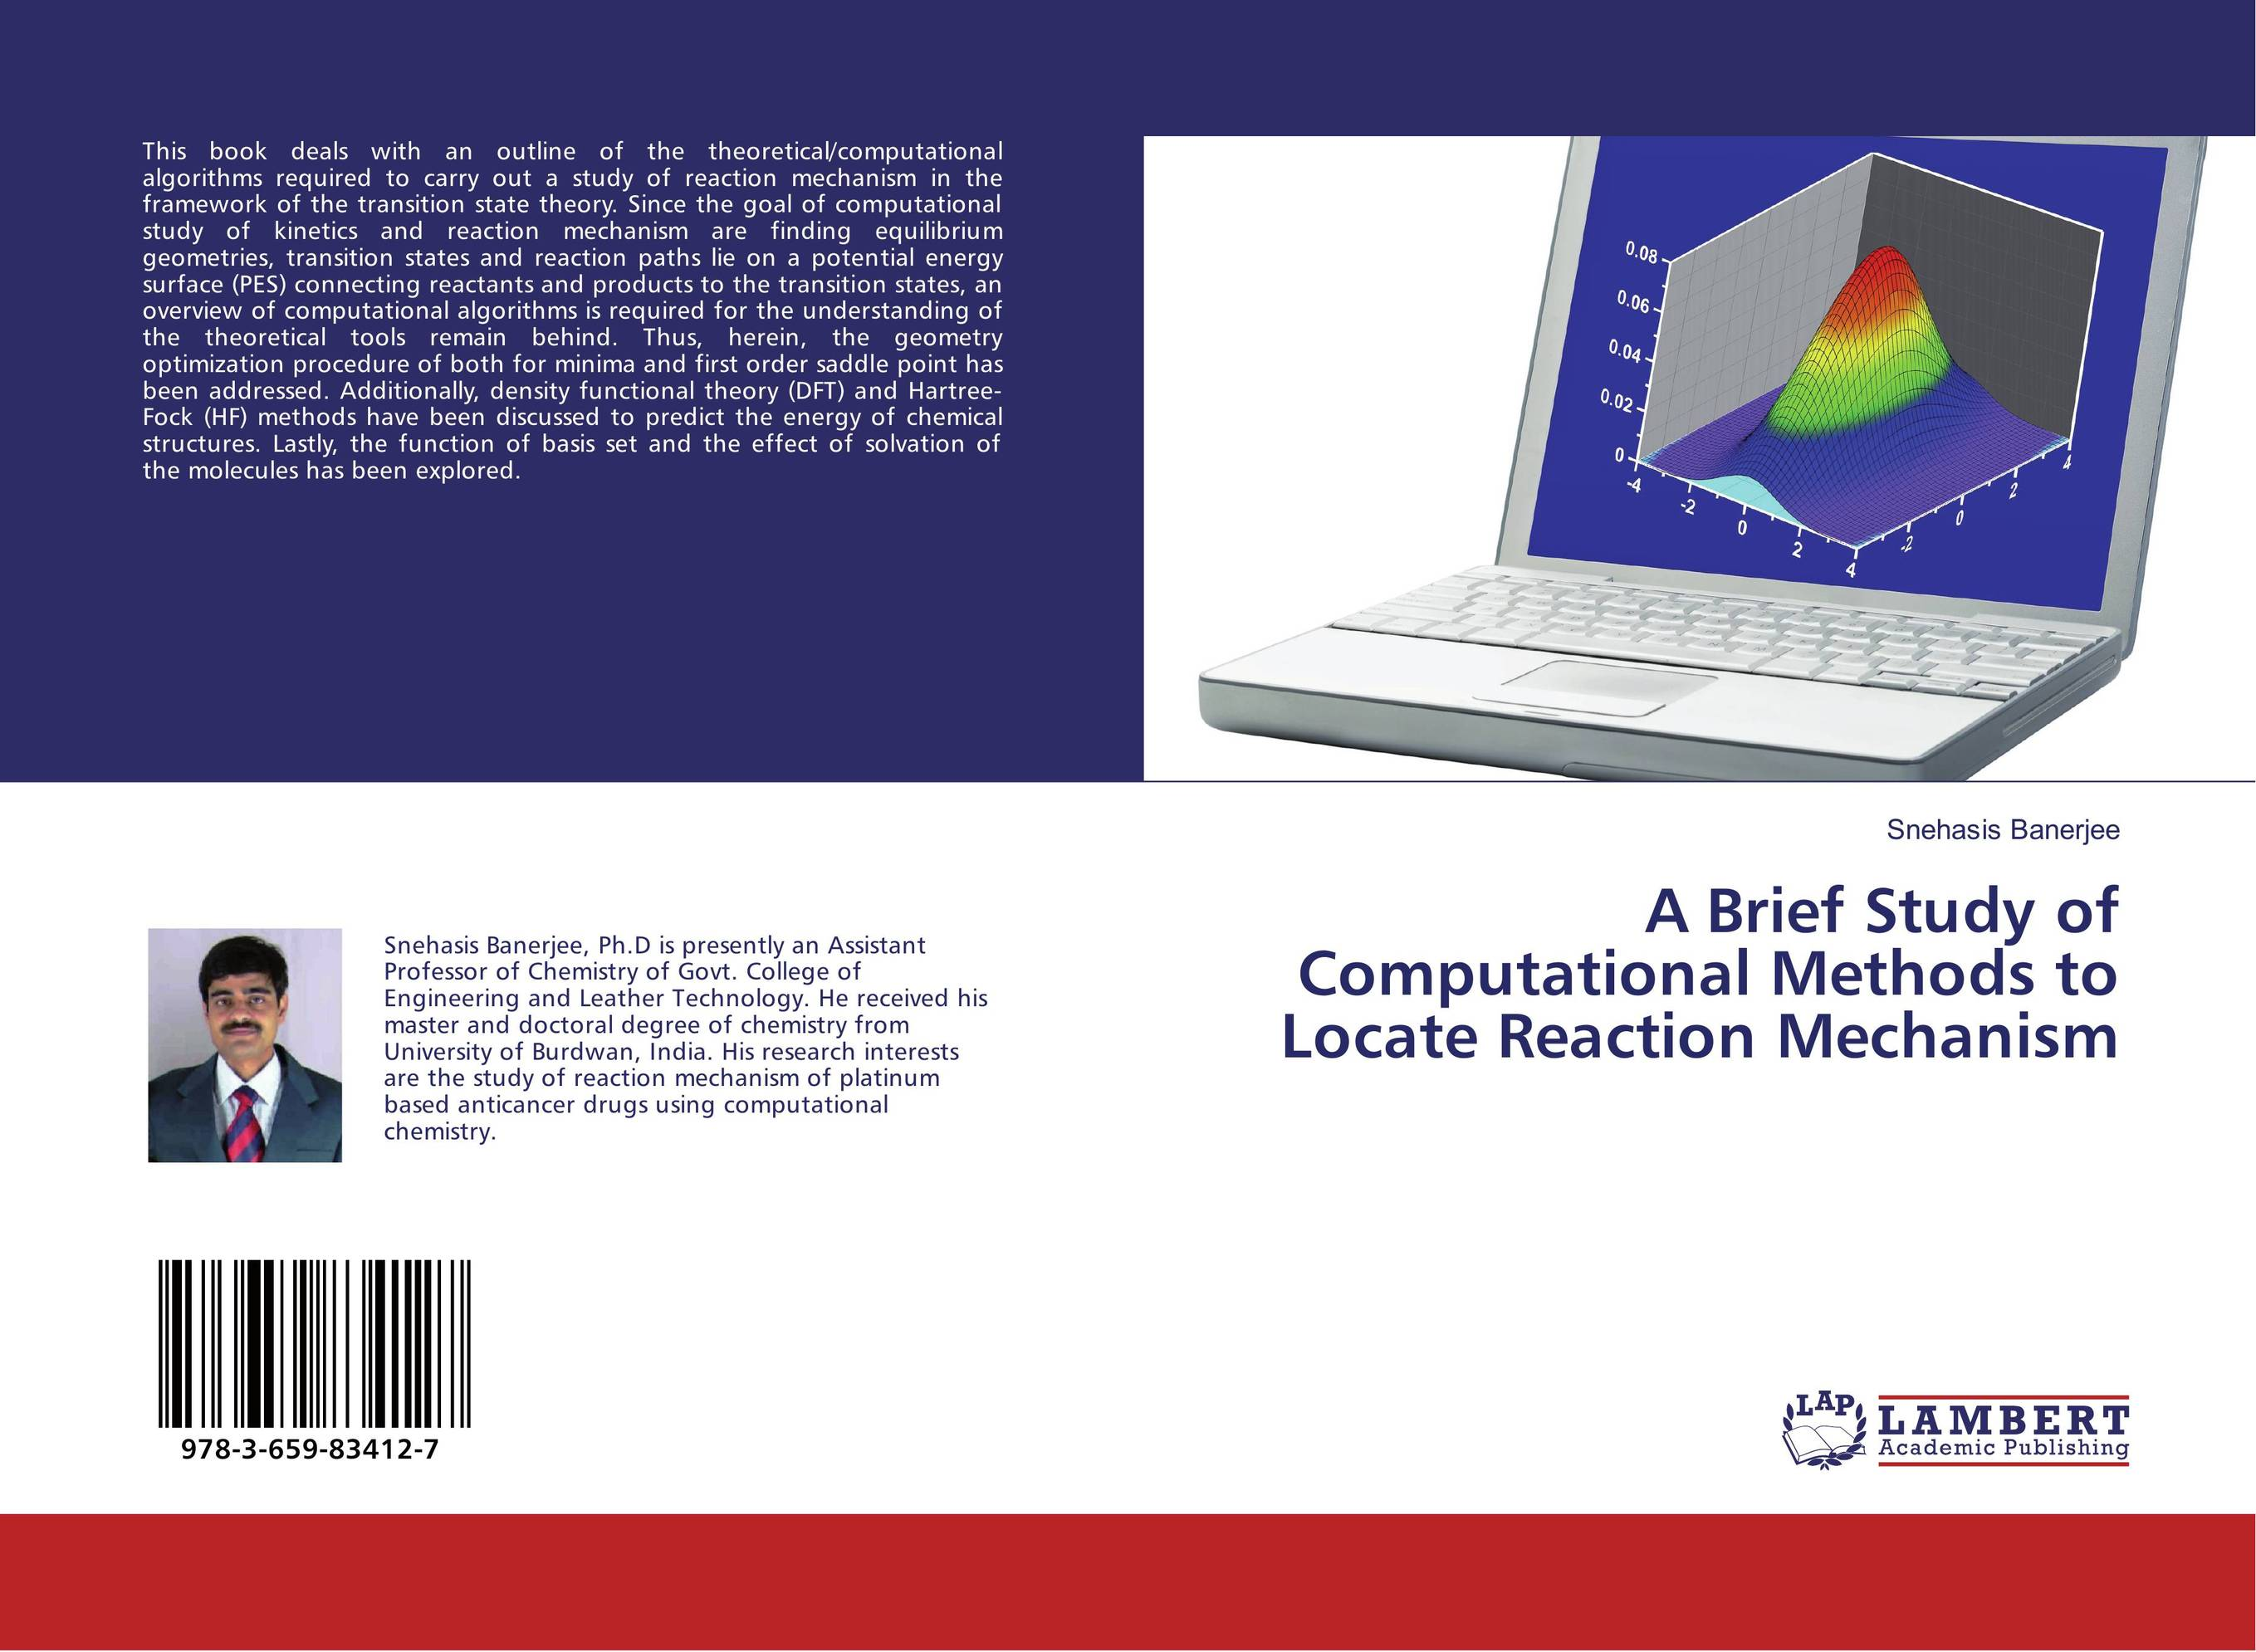 A Brief Study of Computational Methods to Locate Reaction Mechanism the dual state a contribution to the theory of dictatorship